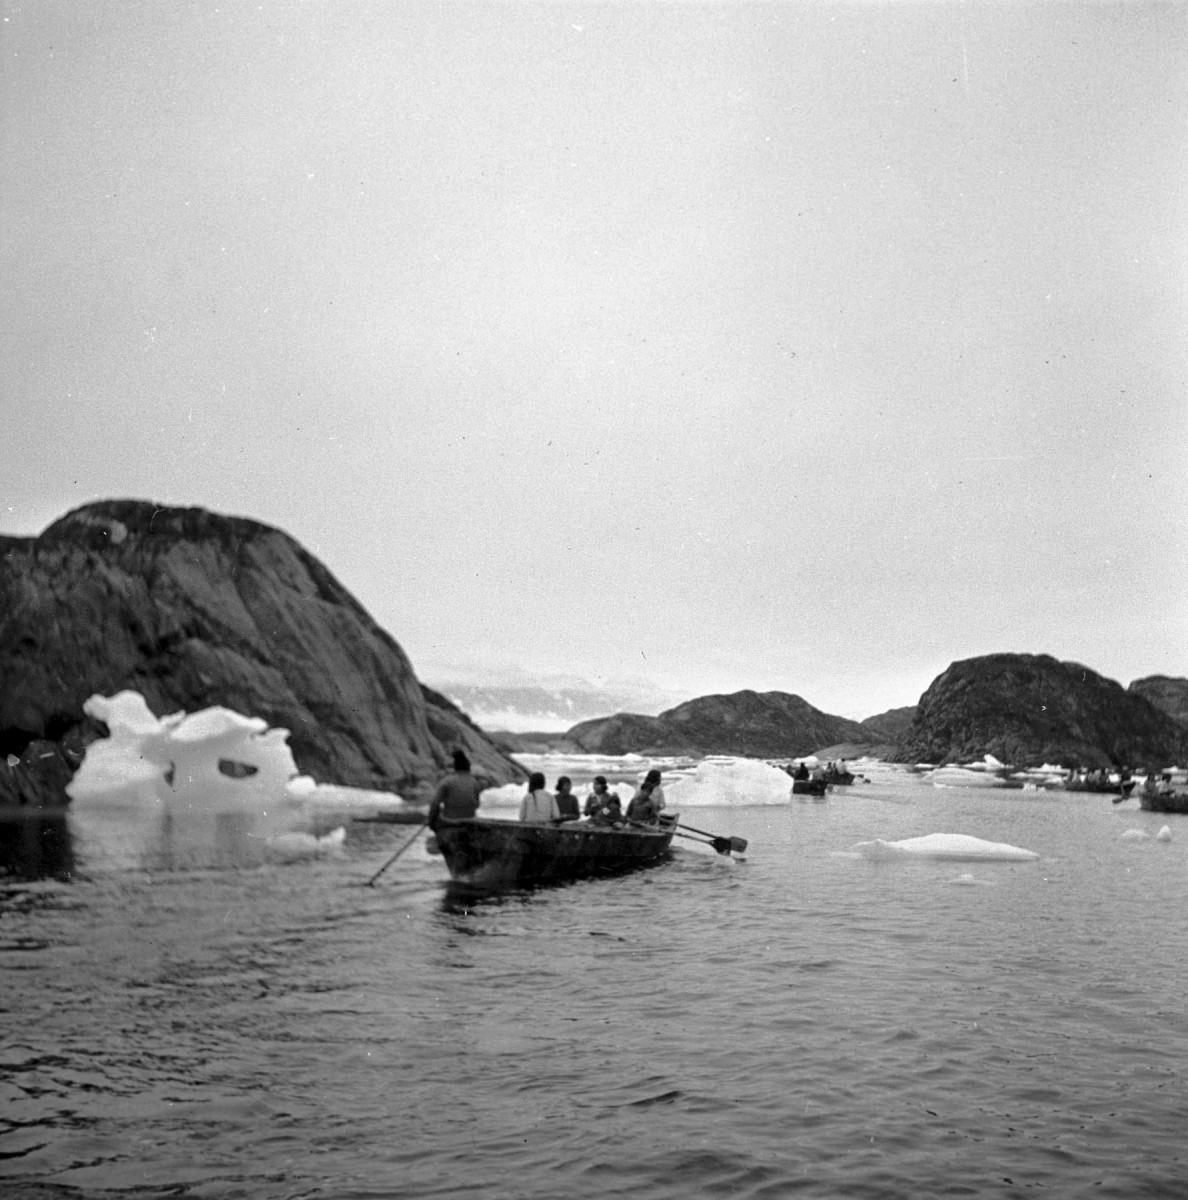 Greenlandic Inuit from the 1930s pictured in their traditional boats (umiaq), used for hunting and transportation. Credit: Jette Bang Photos/Arktisk Institut. Copyright: Arktisk Institut.